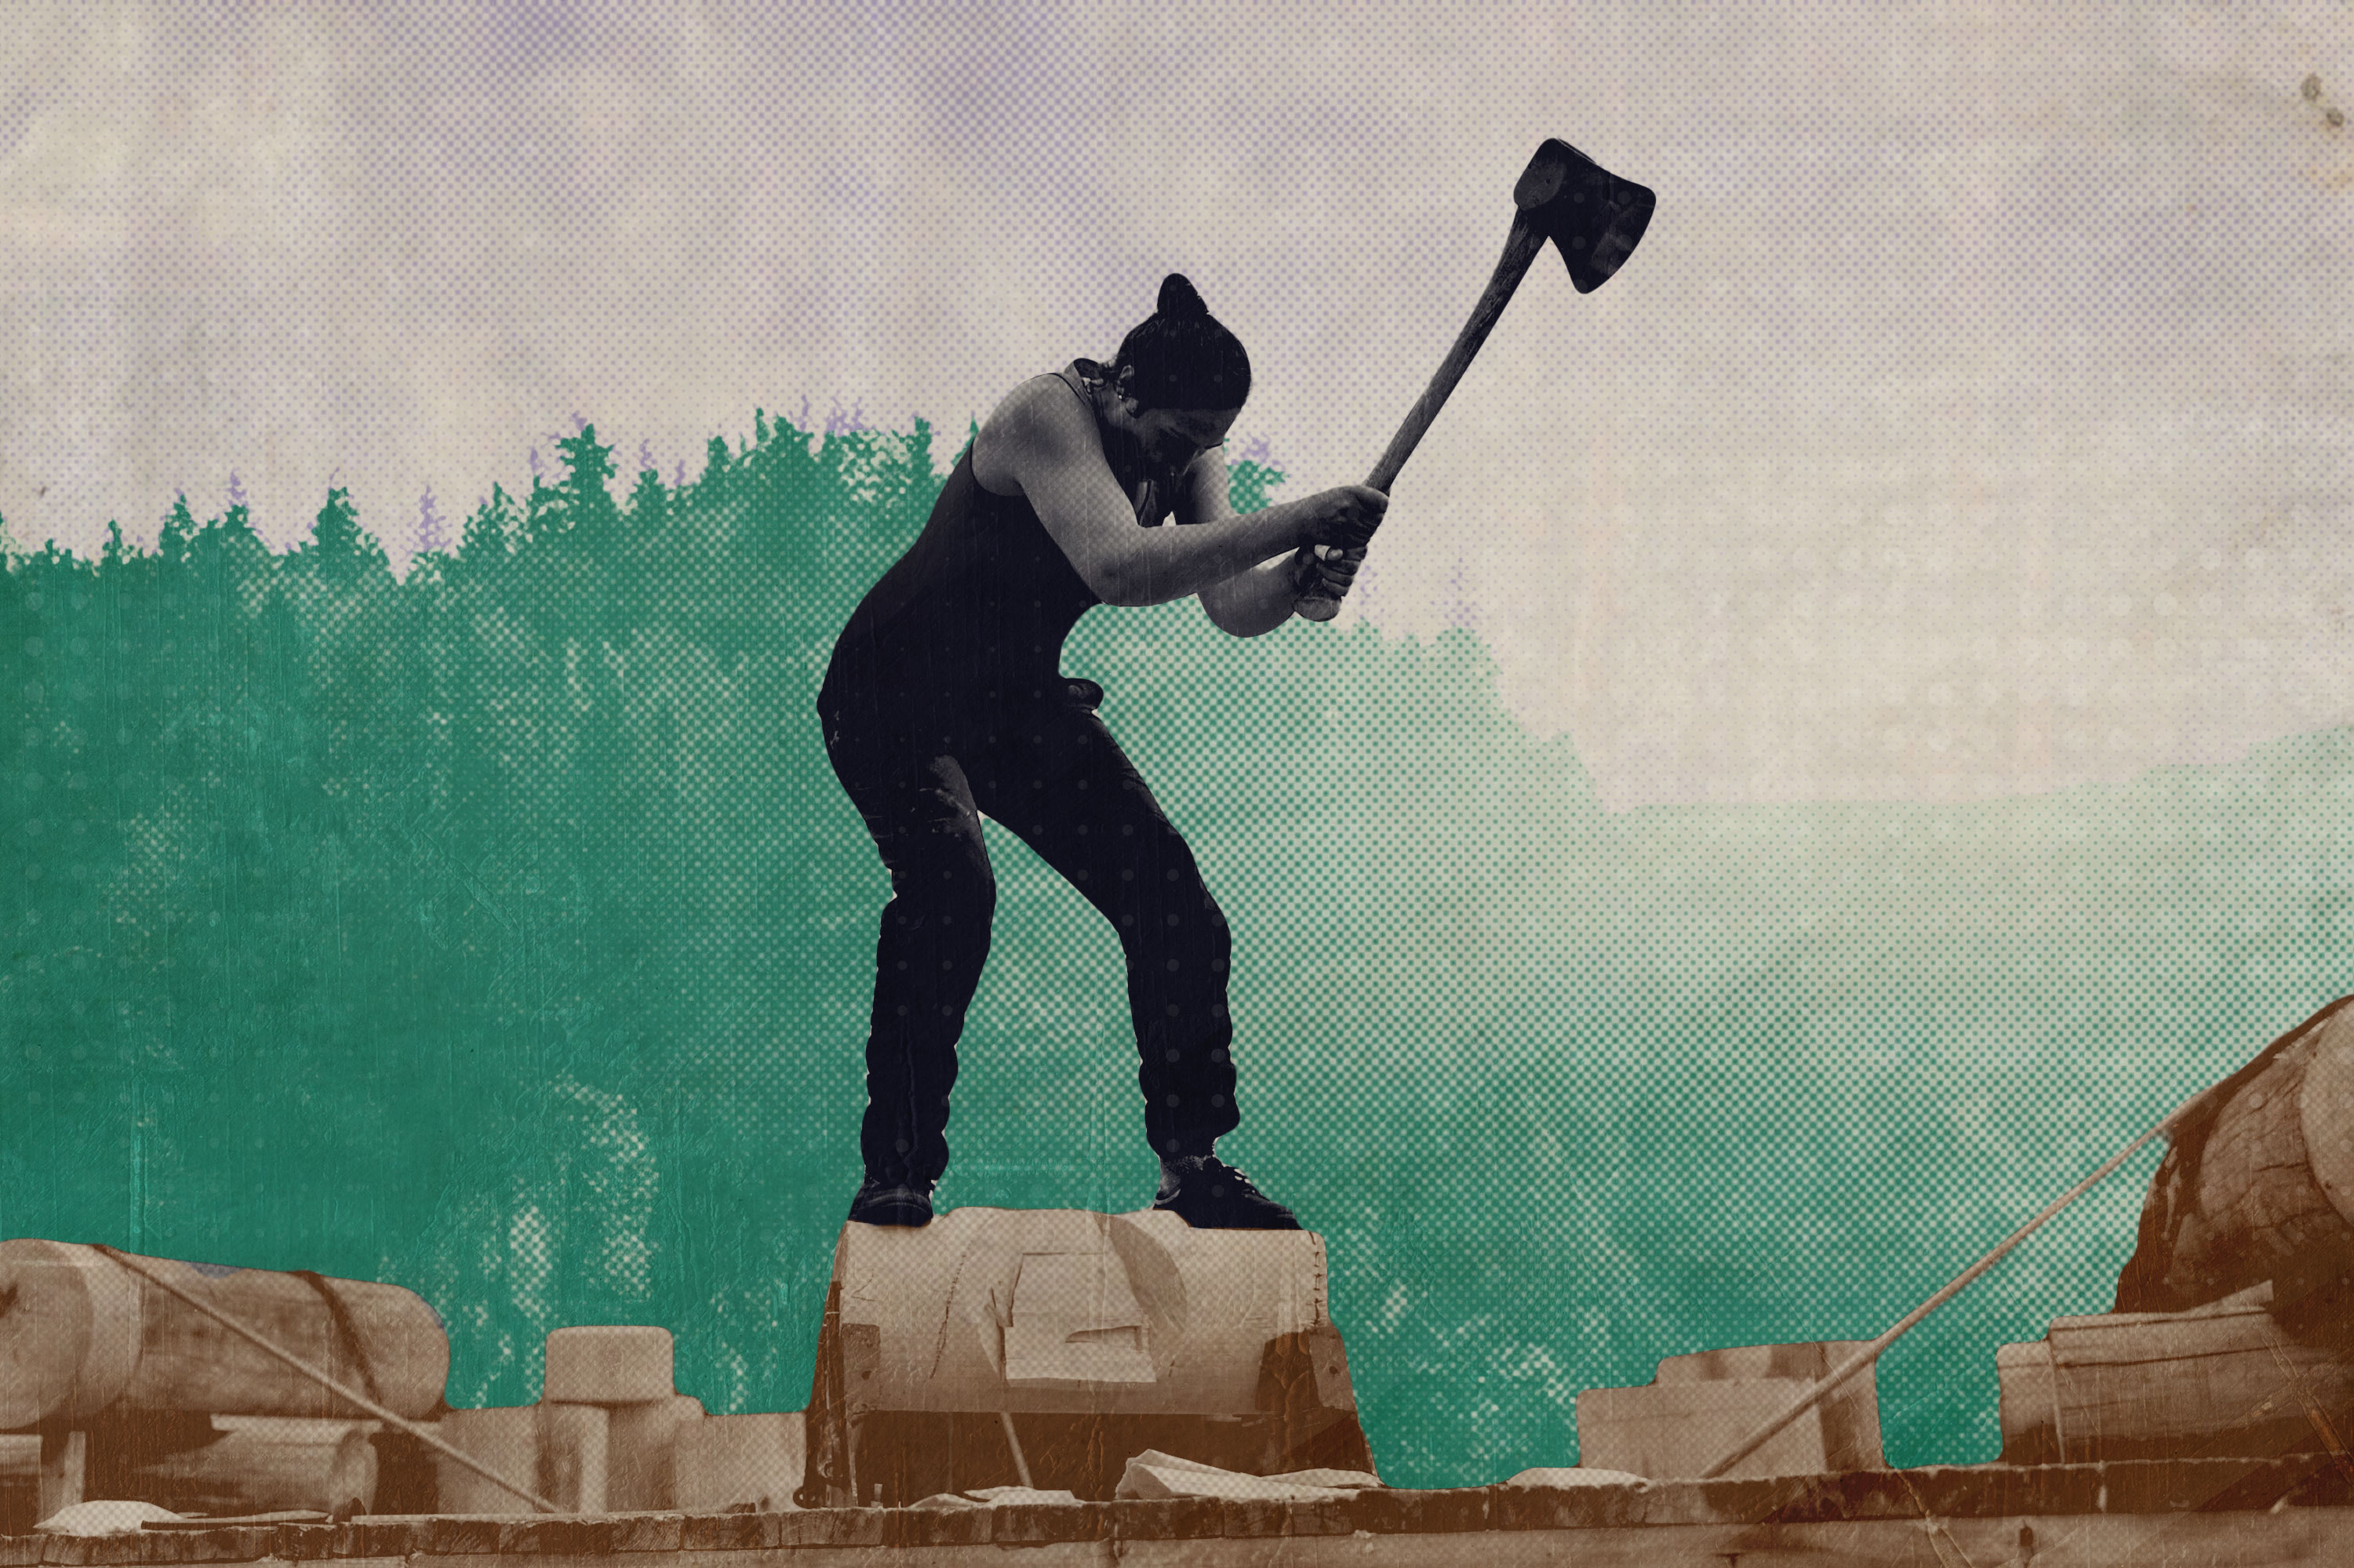 A treated image of a woman competing in a lumberjack event